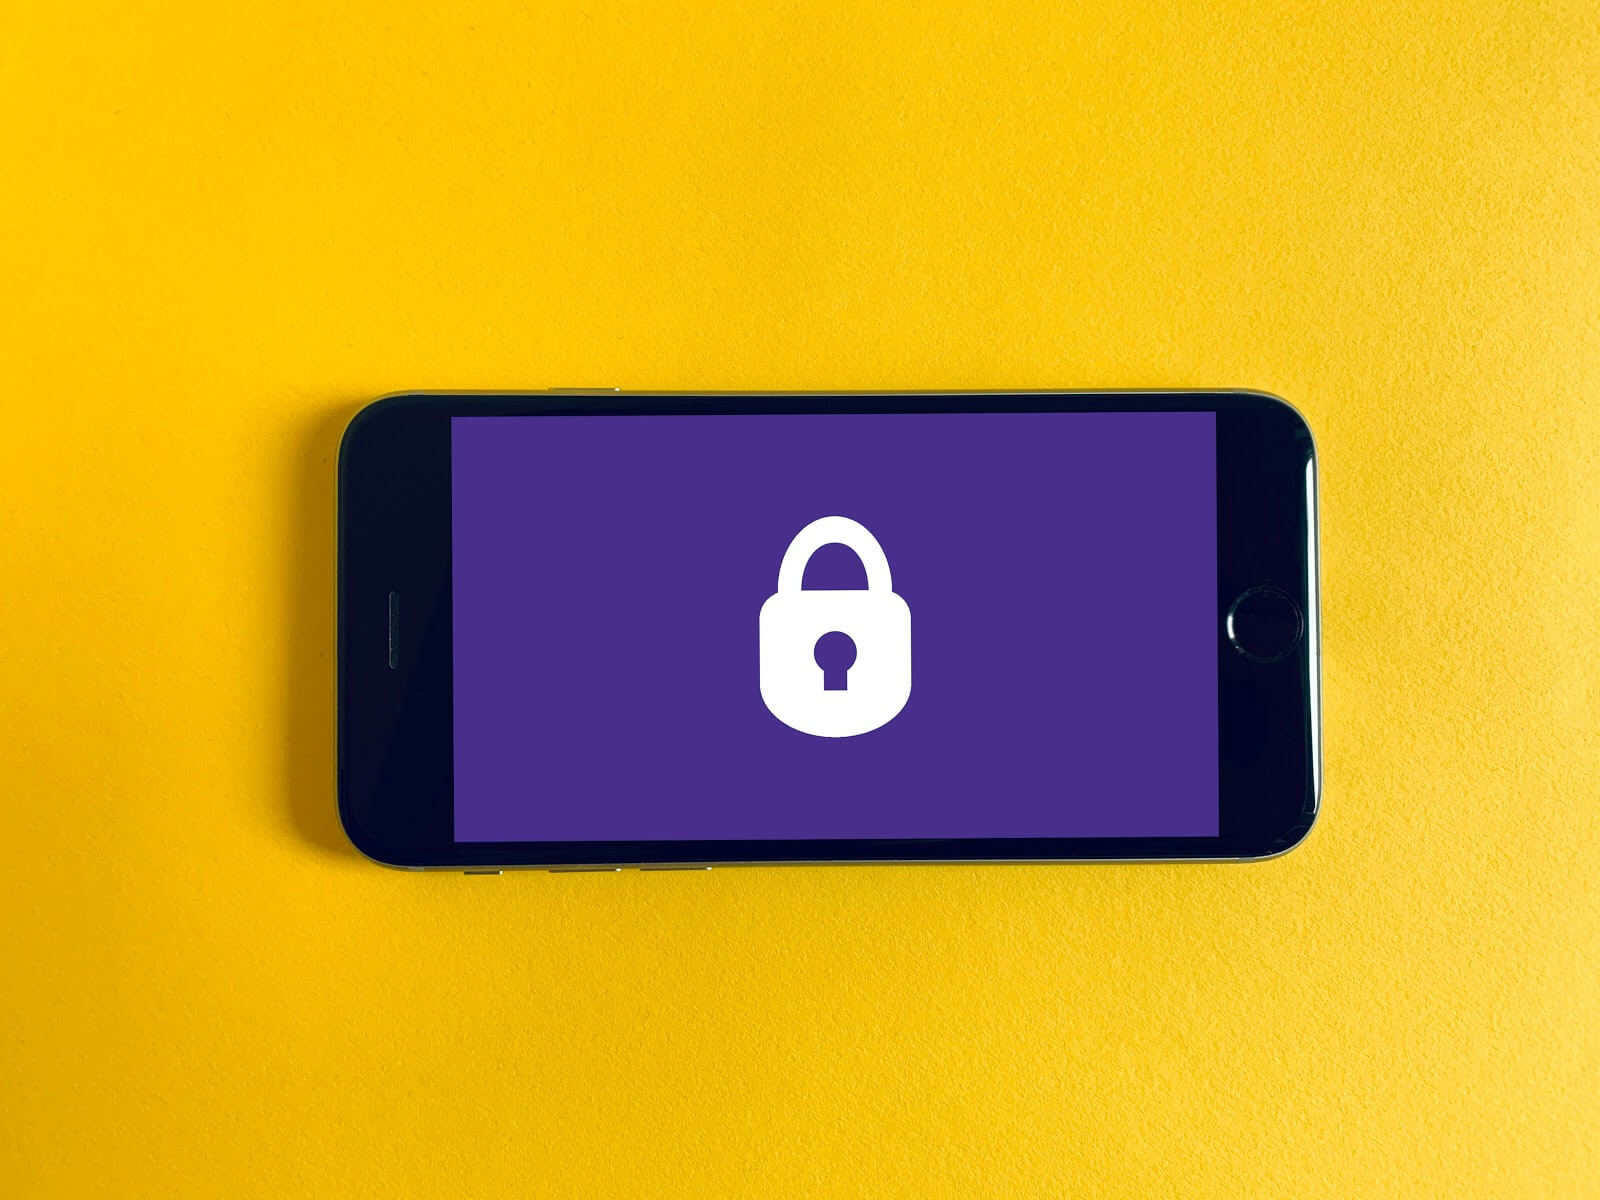 a yellow background with a purple cell phone